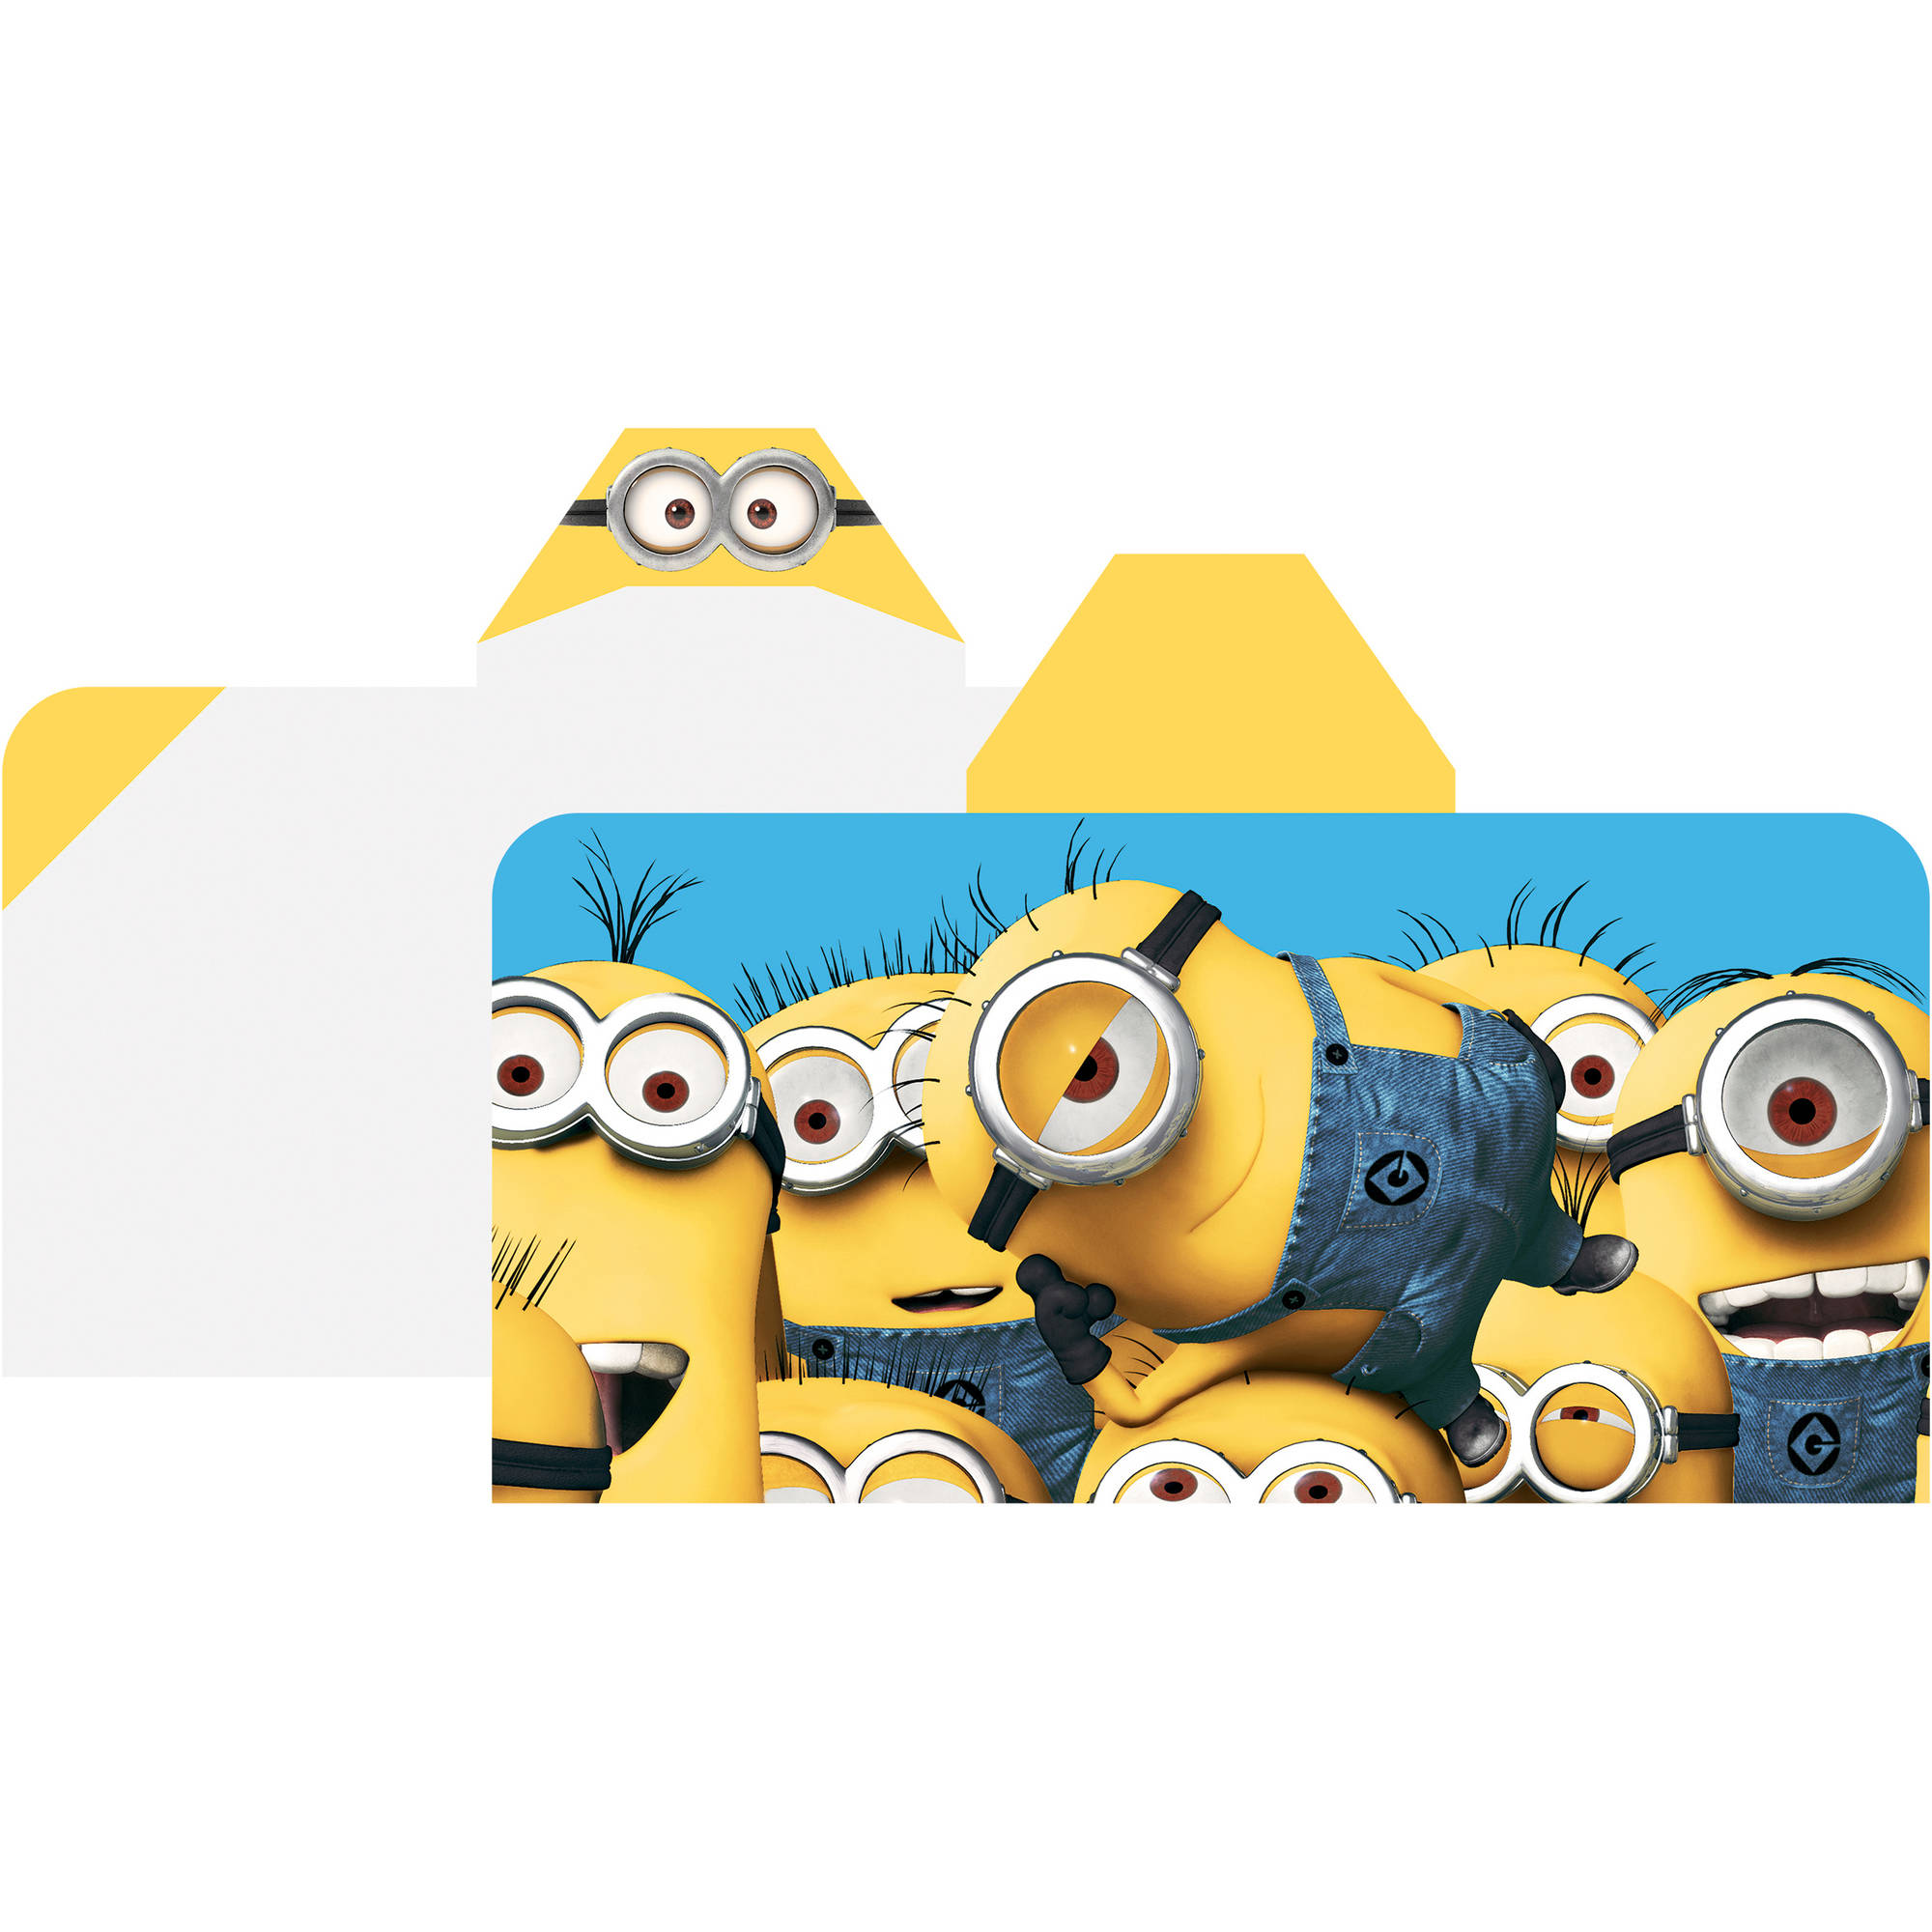 "Minions 'Cozy Up' 24"" x 50"" Hooded Towel Wrap"